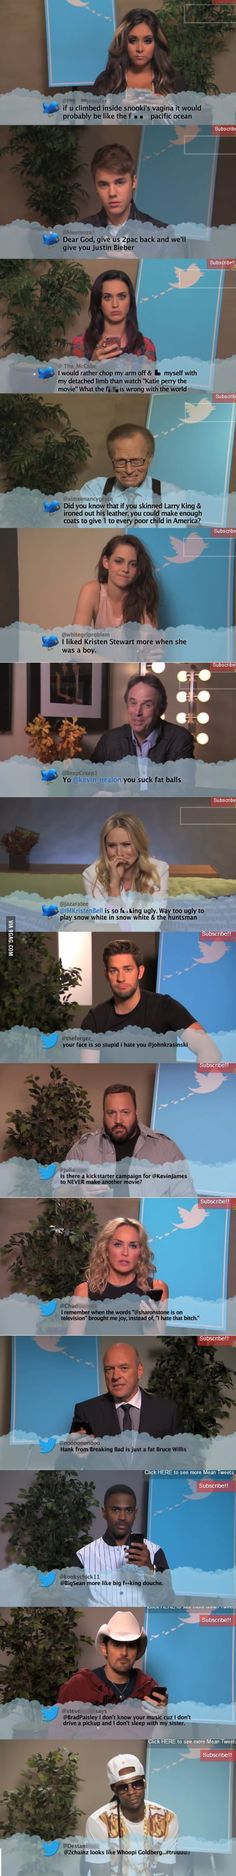 Celebrities read mean tweets about them. The Kristen Bell one couldn't be more wrong.